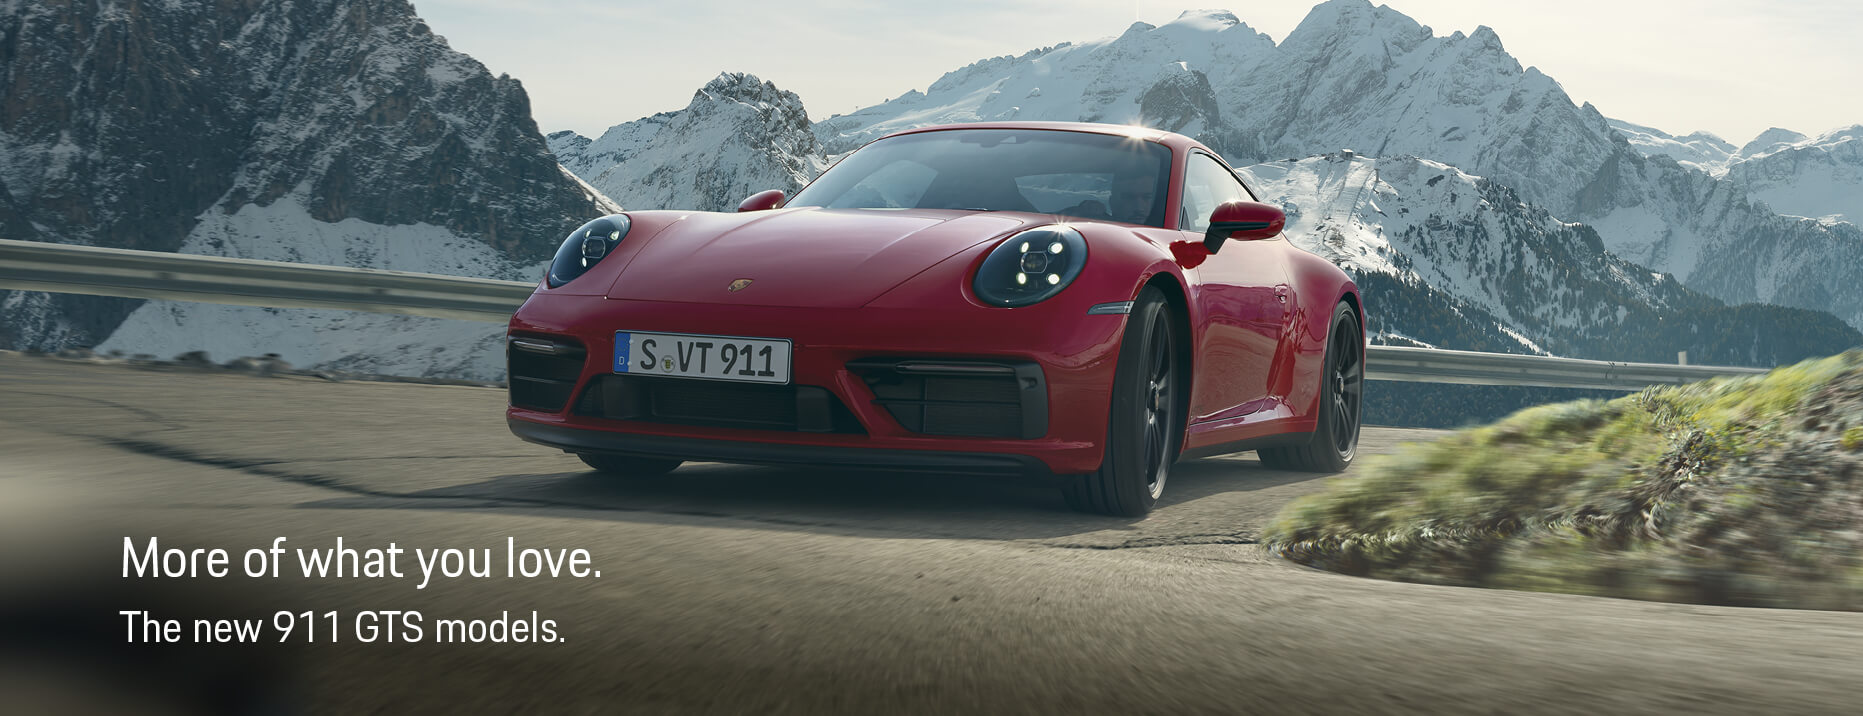 Porsche Dealership Adelaide